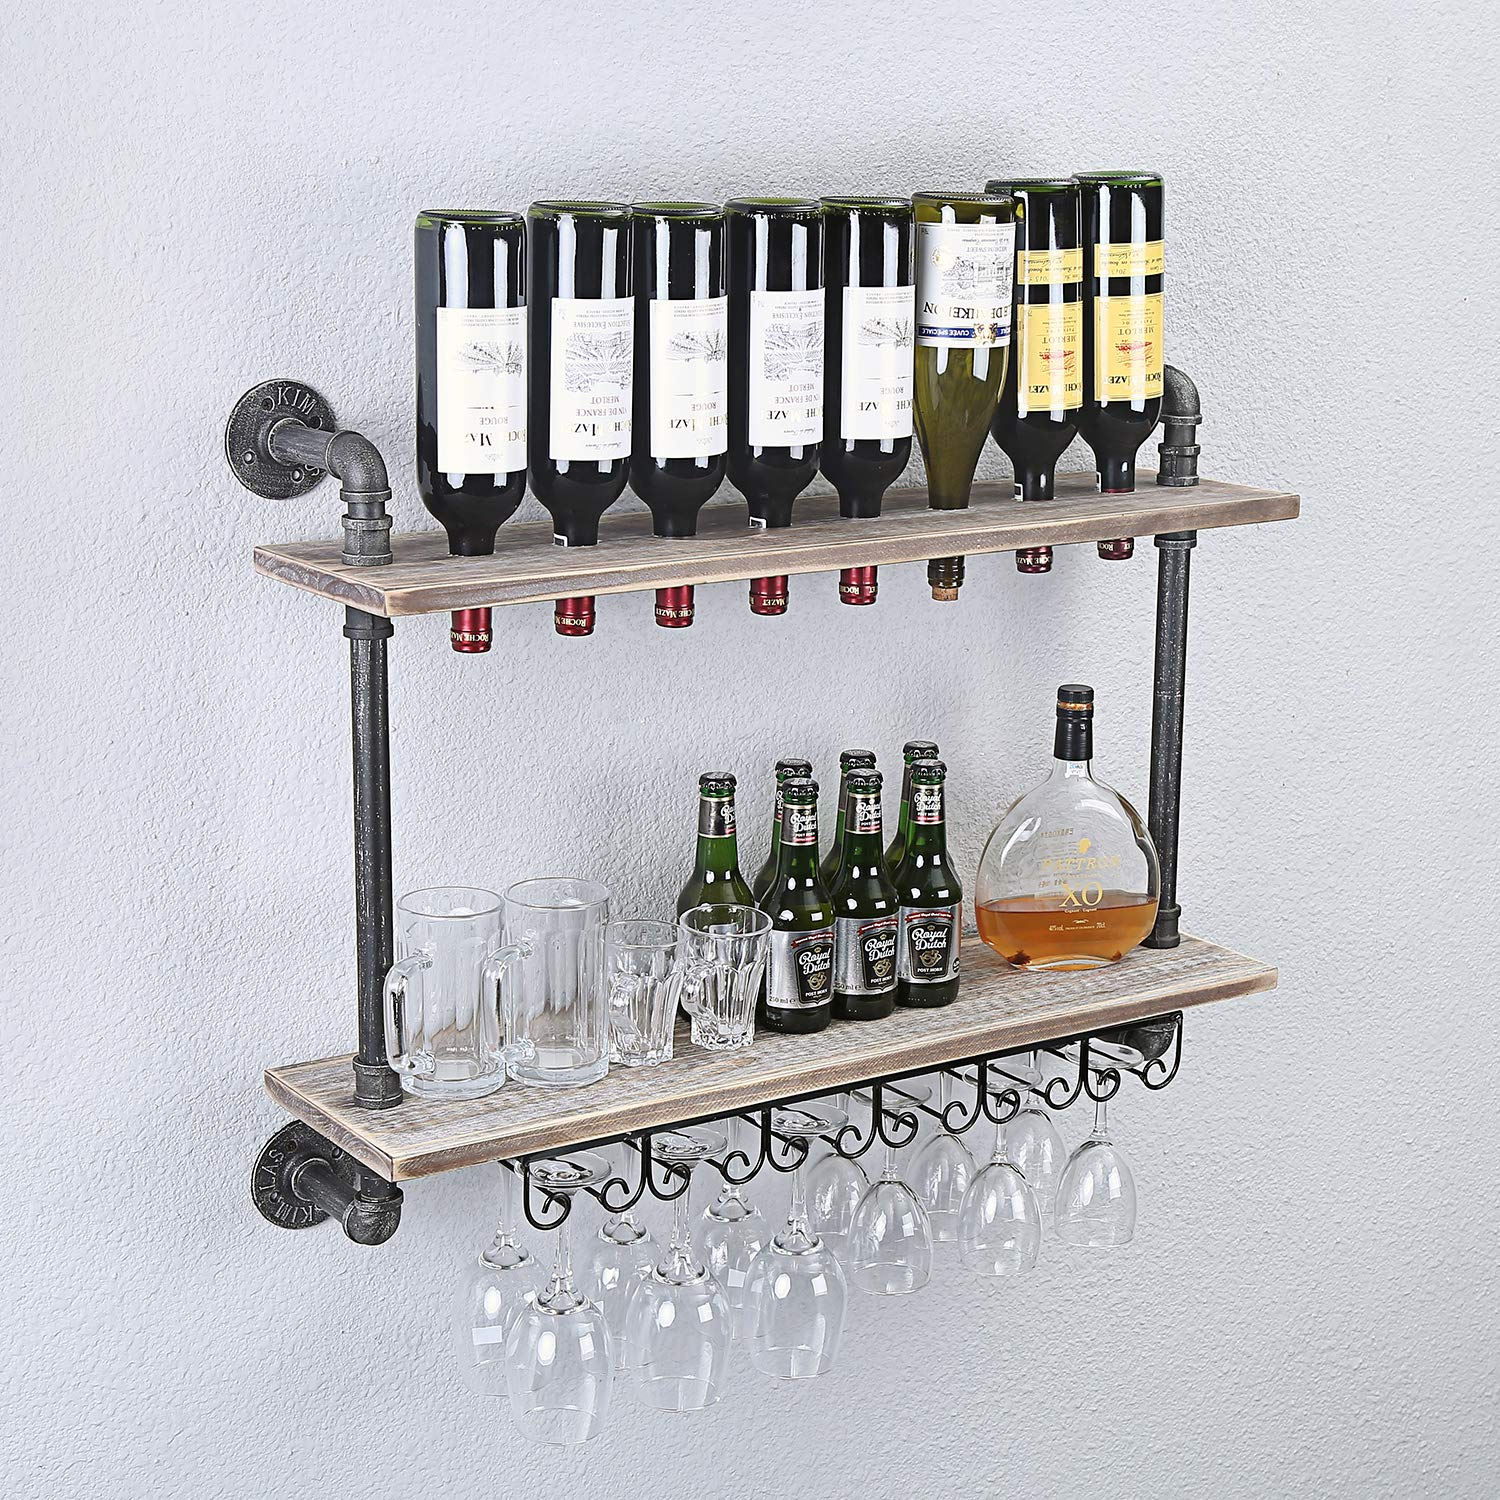 WGX Design For You Industrial Rustic Wall Mounted Wine Racks with Glass Holder Pipe Hanging Wine Rack,2-Tiers Wood Shelf Floating Shelves,Home Room Living Room Kitchen Decor Display Rack (32inch) by WGX Design For You